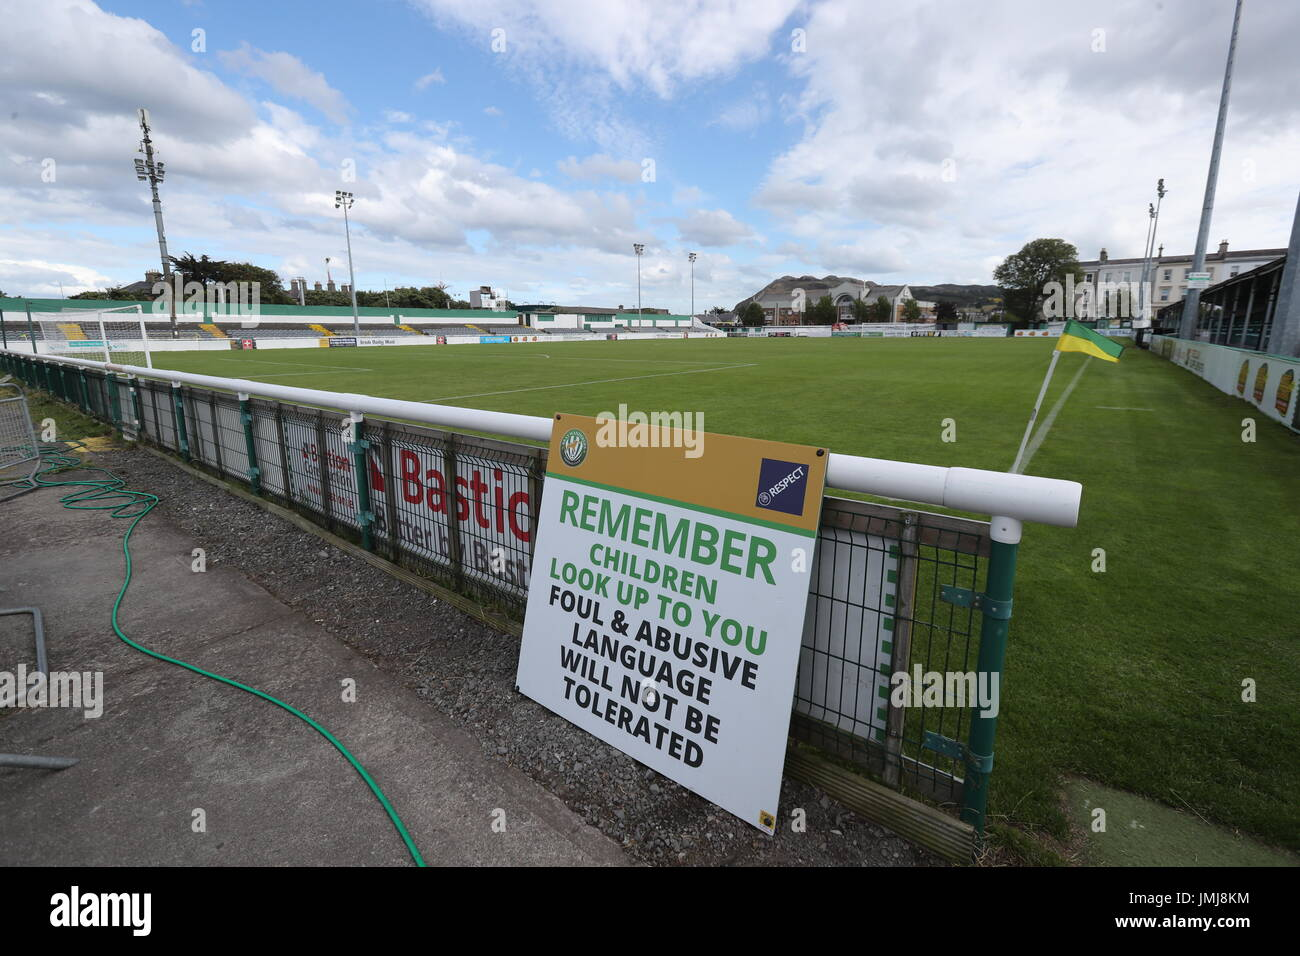 f9c091f18e91a A general view of The Carlisle Grounds, home of Bray Wanderers football  club.